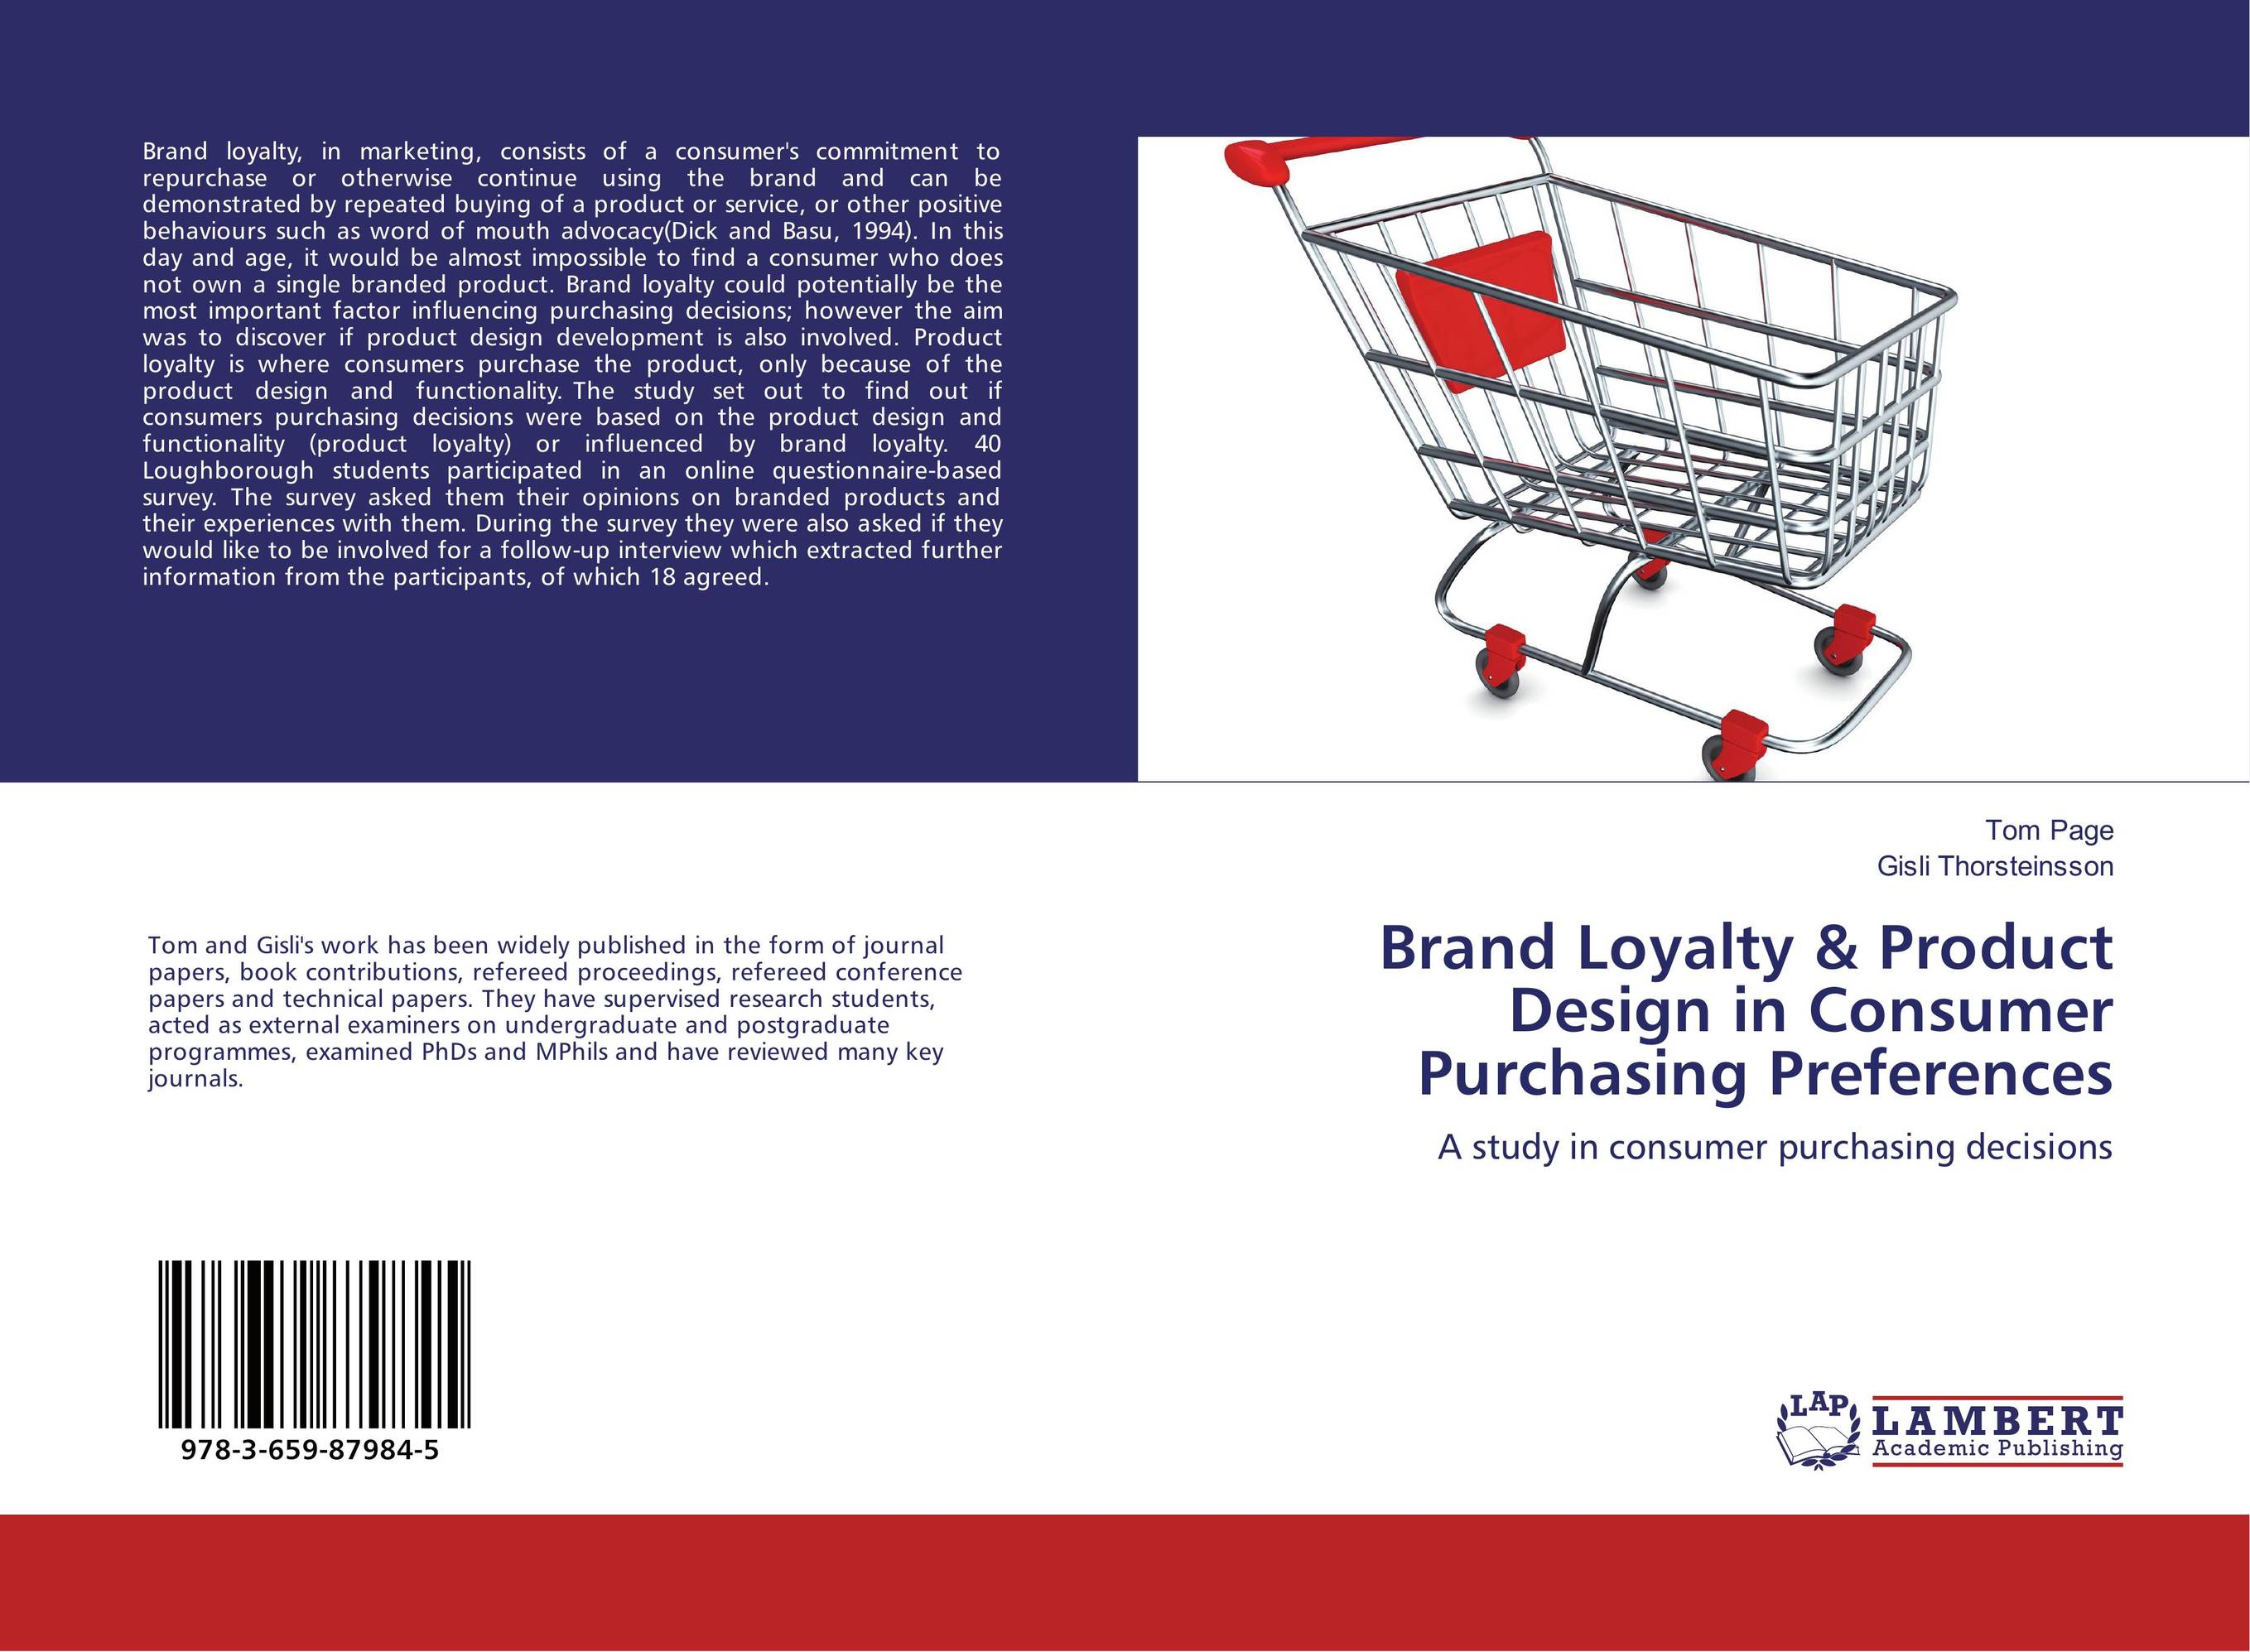 the influence of brand loyalty on cosmetics buying behavior of uae female consumers The purpose of this article is to investigate the influence of brand loyalty on cosmetics buying behavior of female consumers in the emirate of abu dhabi in the uae the seven factors of brand loyalty are brand name, product quality, price, design, promotion, service quality and store environment.